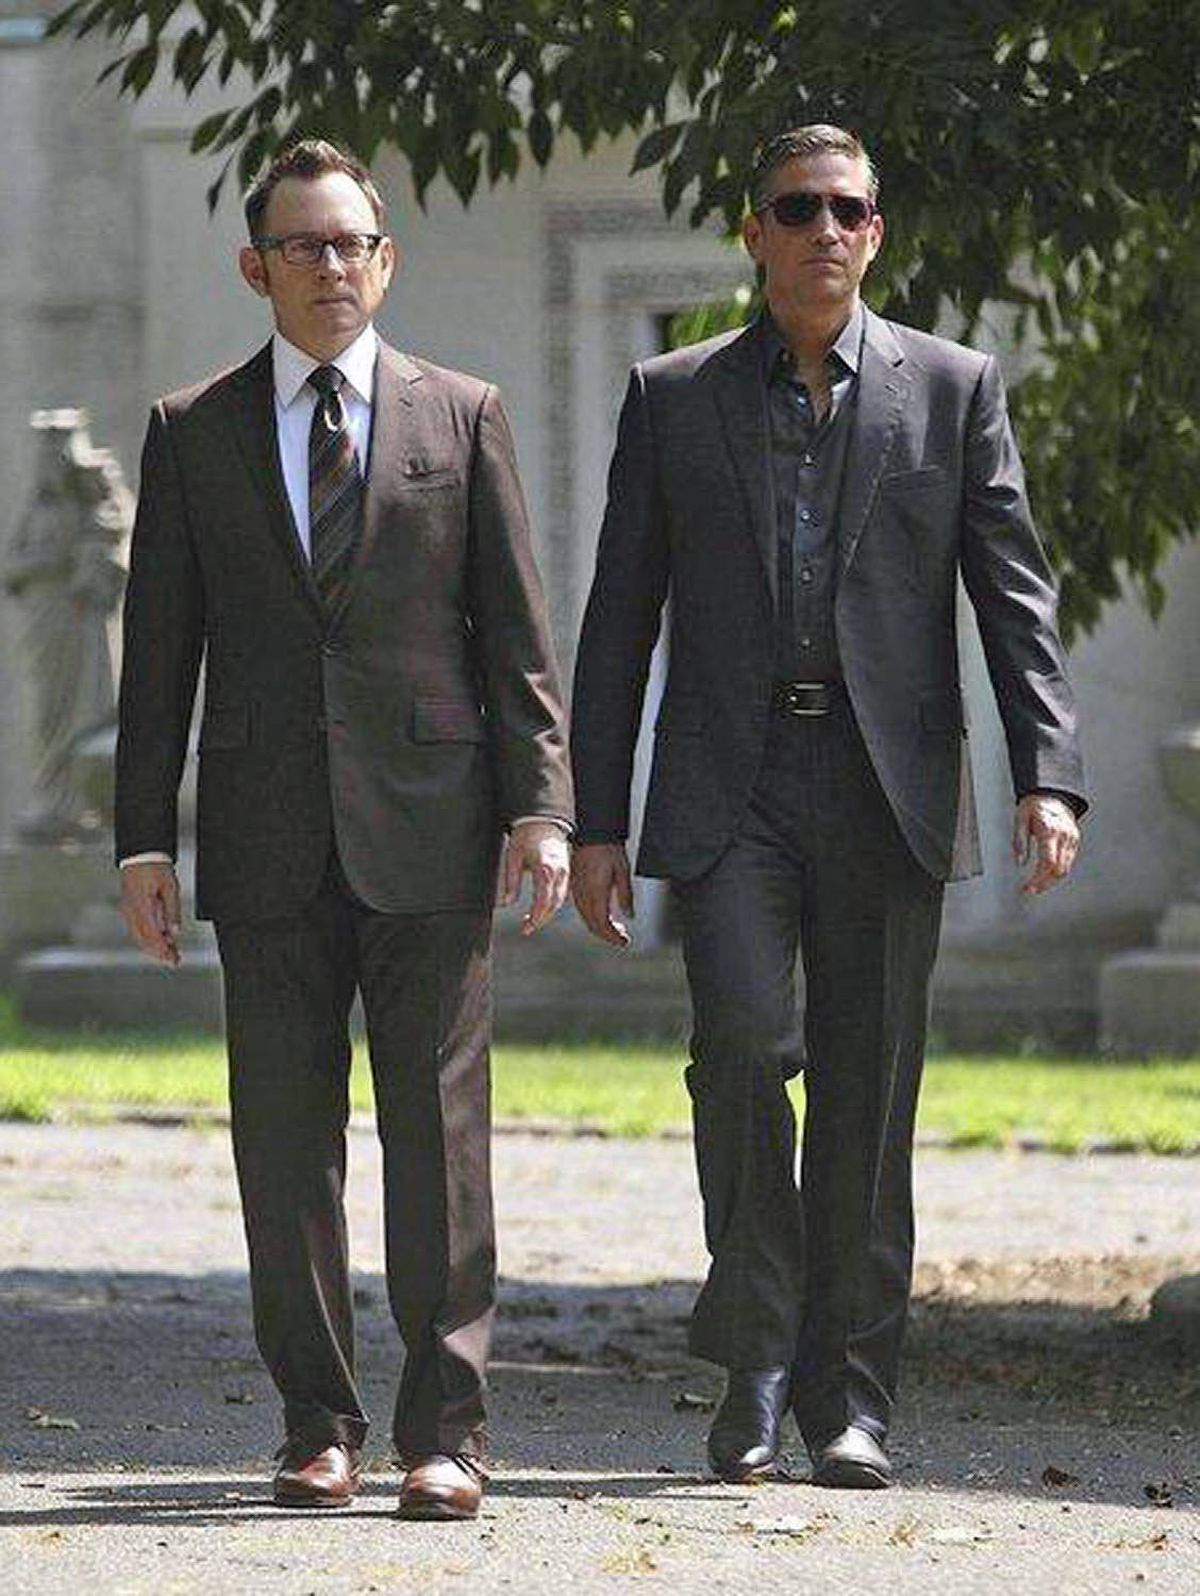 """DRAMA Person of Interest CBS, CITY-TV, 9 p.m. ET/PT Imagine if there really was a machine that could predict when someone is about to commit a violent crime. That's pretty much the premise behind this hit rookie drama starring former Lost regular Michael Emerson as Finch, creator of the computer program known as """"The Machine,"""" and Jim Caviezel as Reese, the former CIA agent he hires to take care of the crime before it occurs. In tonight's show, the pair focus on a teenager whose brother was just murdered. The rapper known as Astro, who made it to the final rounds of The X Factor last fall, makes his acting debut as the person of interest."""